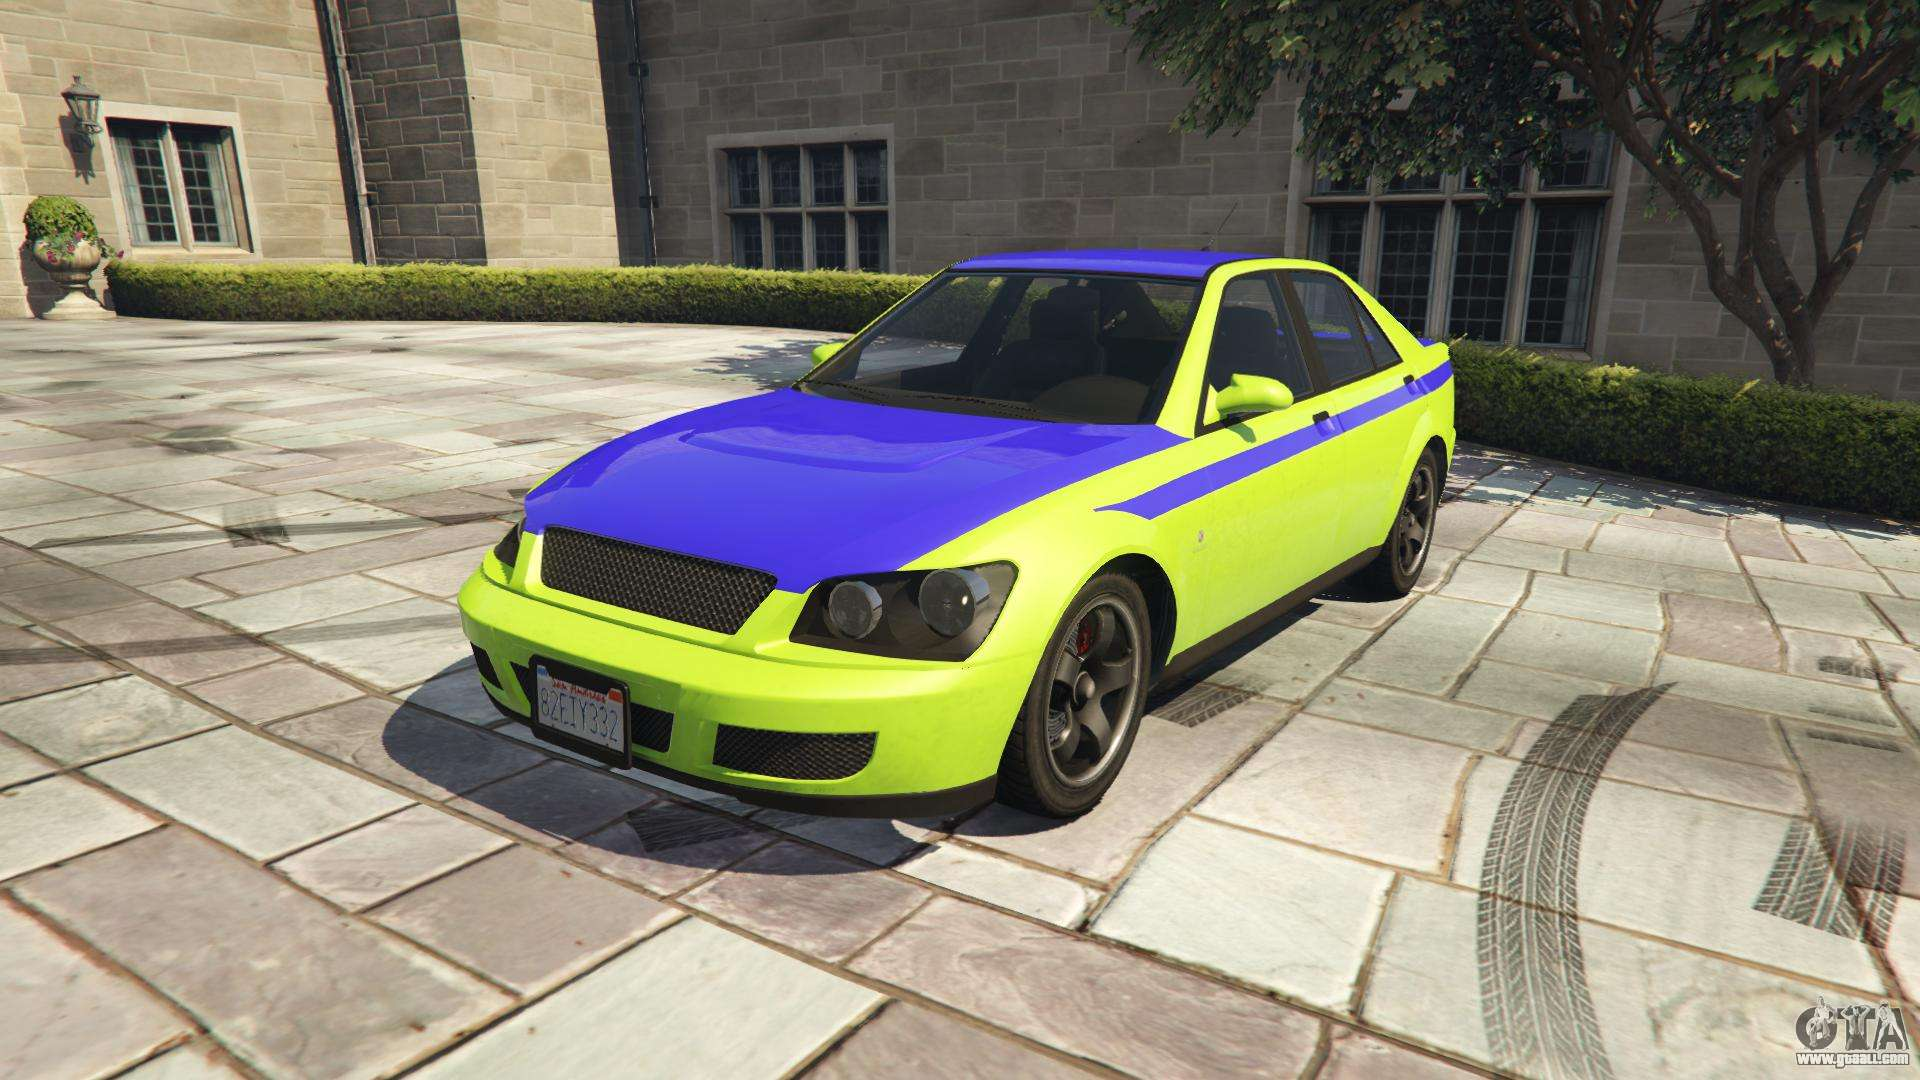 Karin Sultan GTA 5 - front view